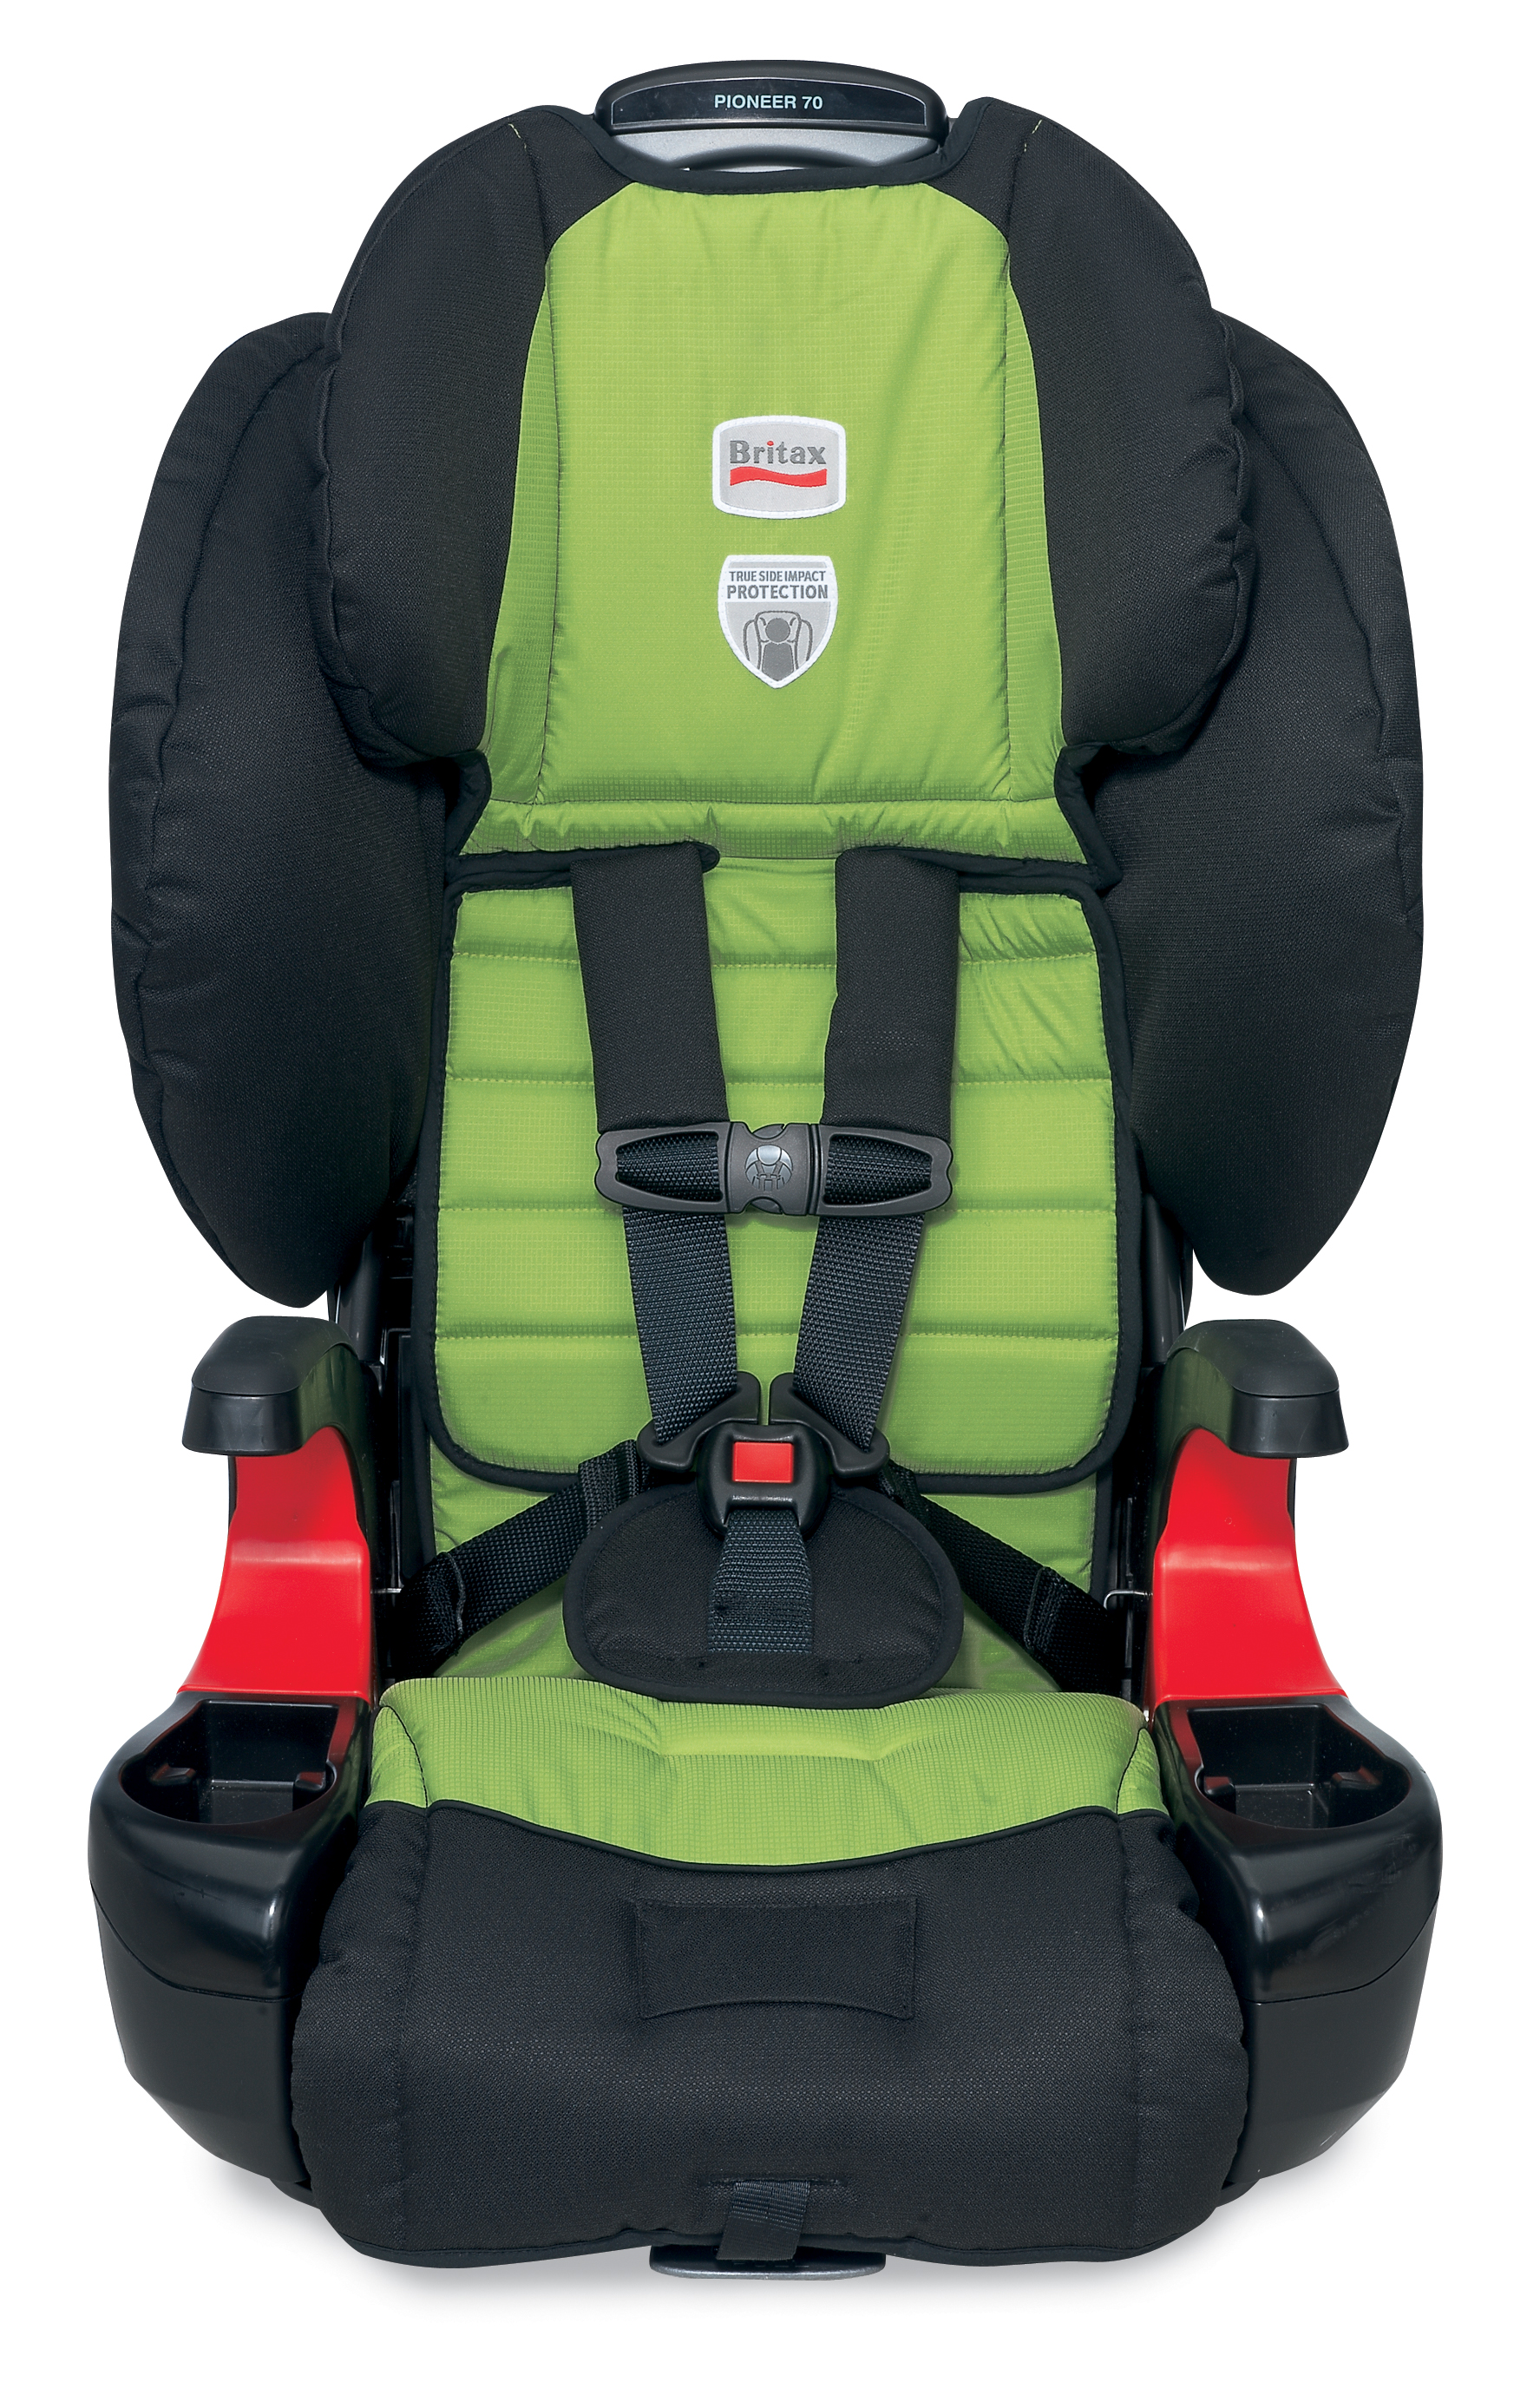 Britax Introduces Its Most Innovative Booster Seats